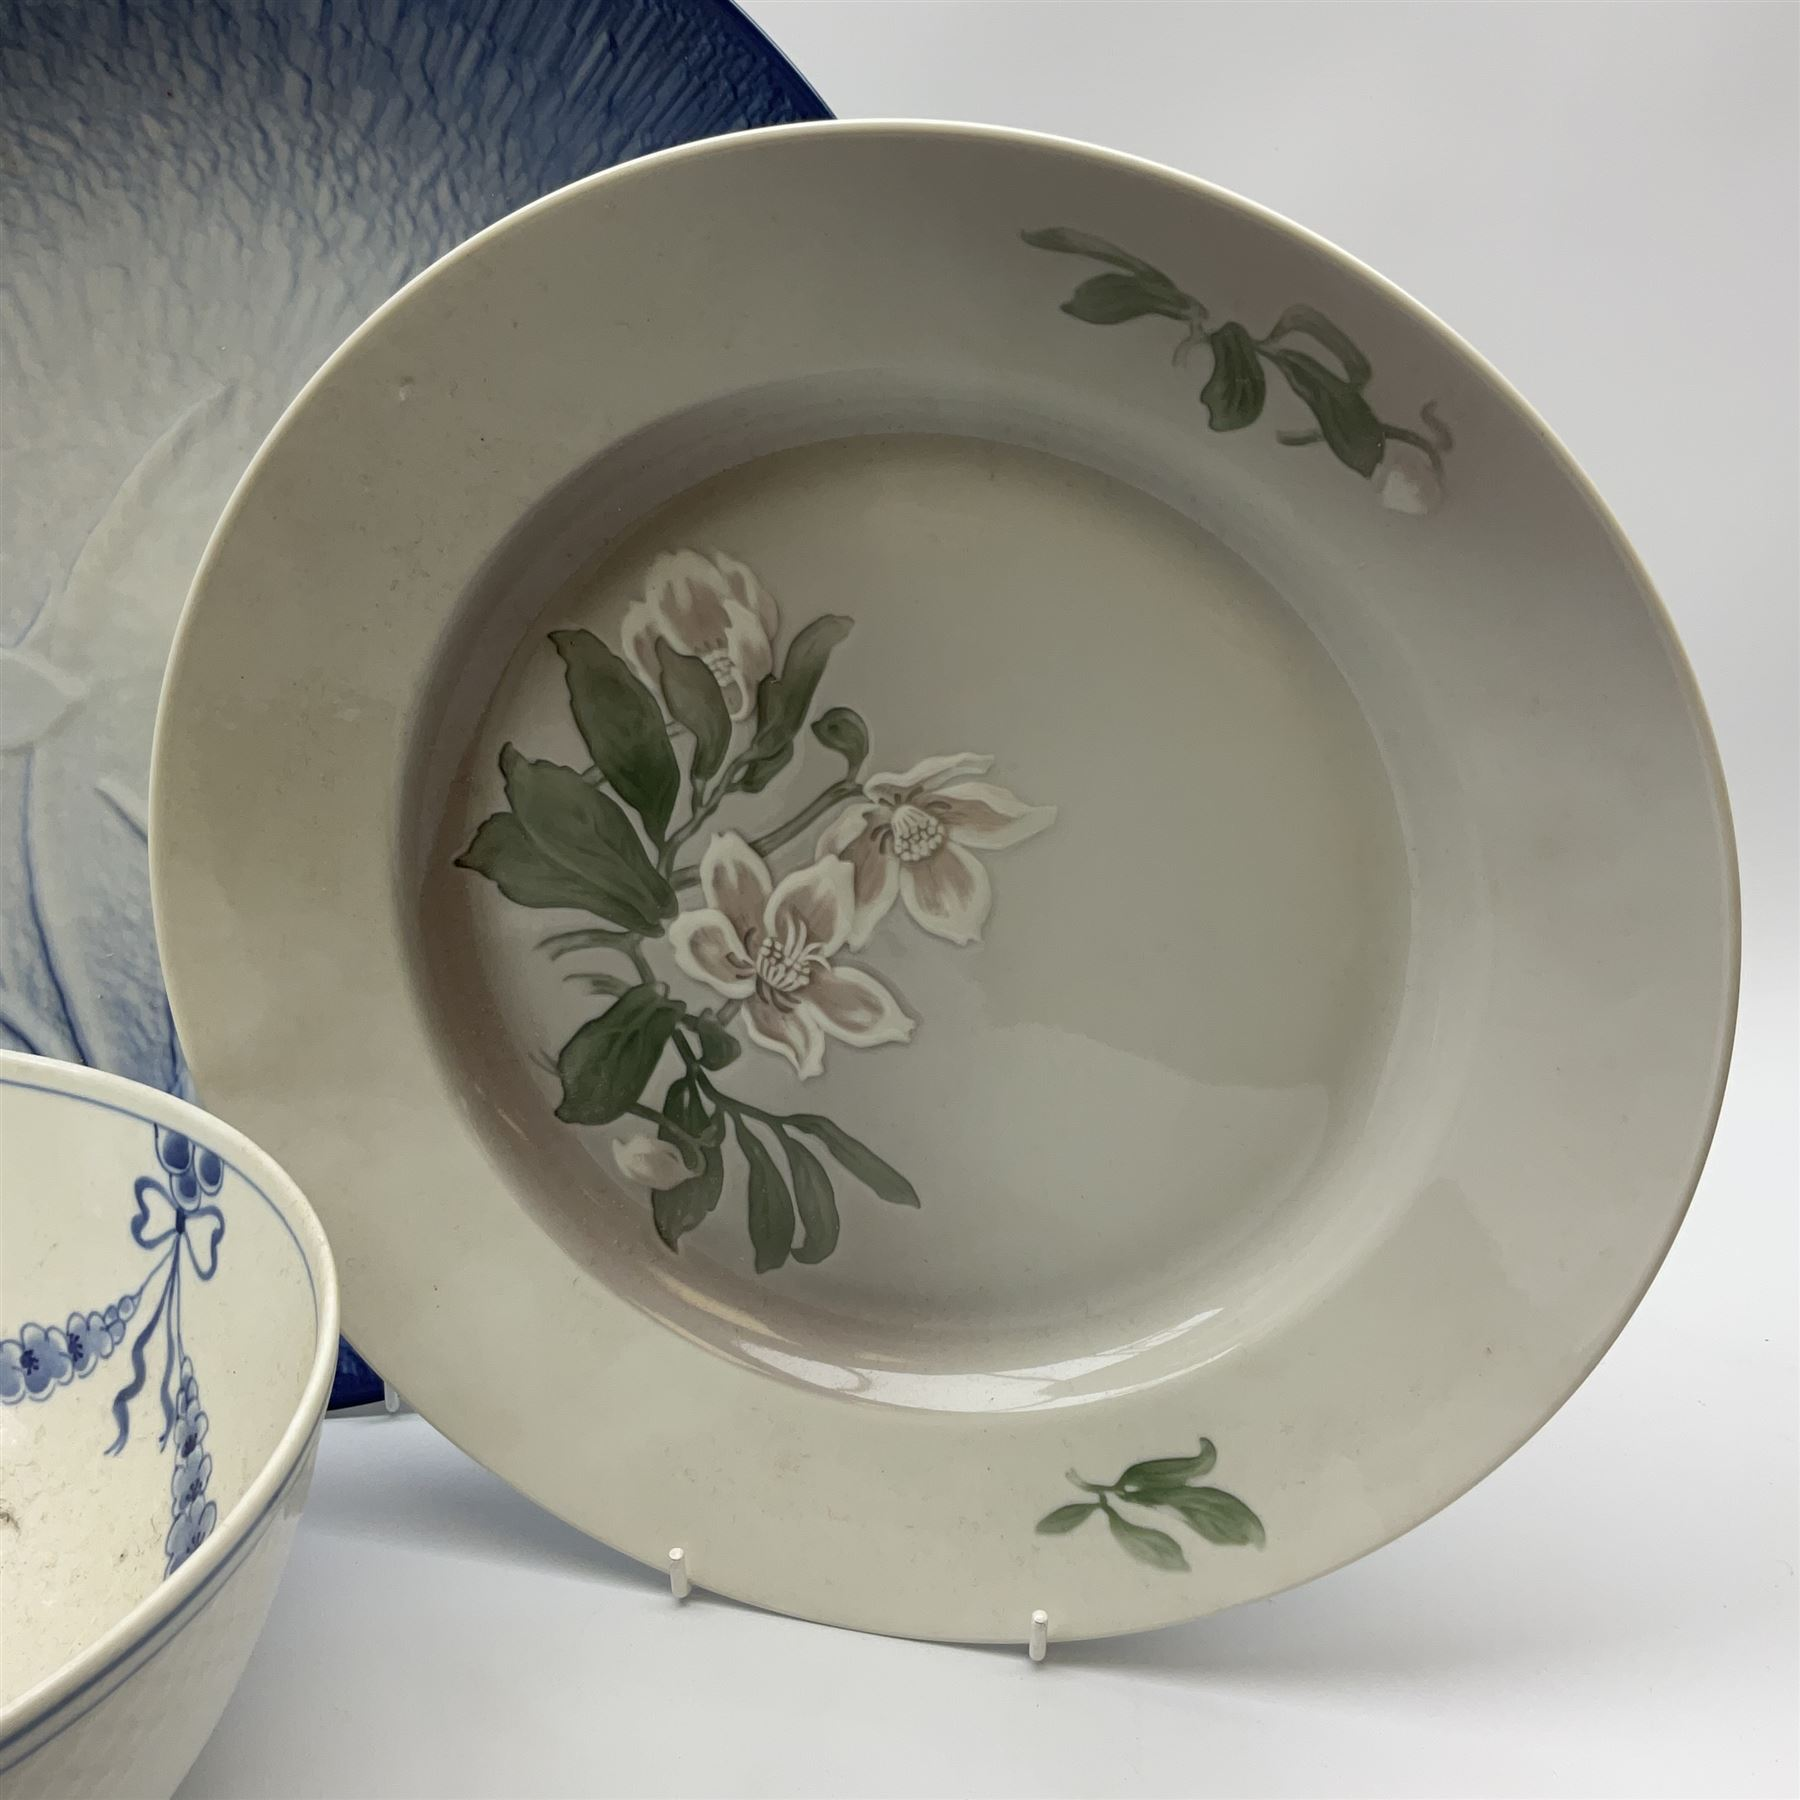 A Bing and Grondahl dish with moulded rim and blue swag decoration to the interior - Image 3 of 6